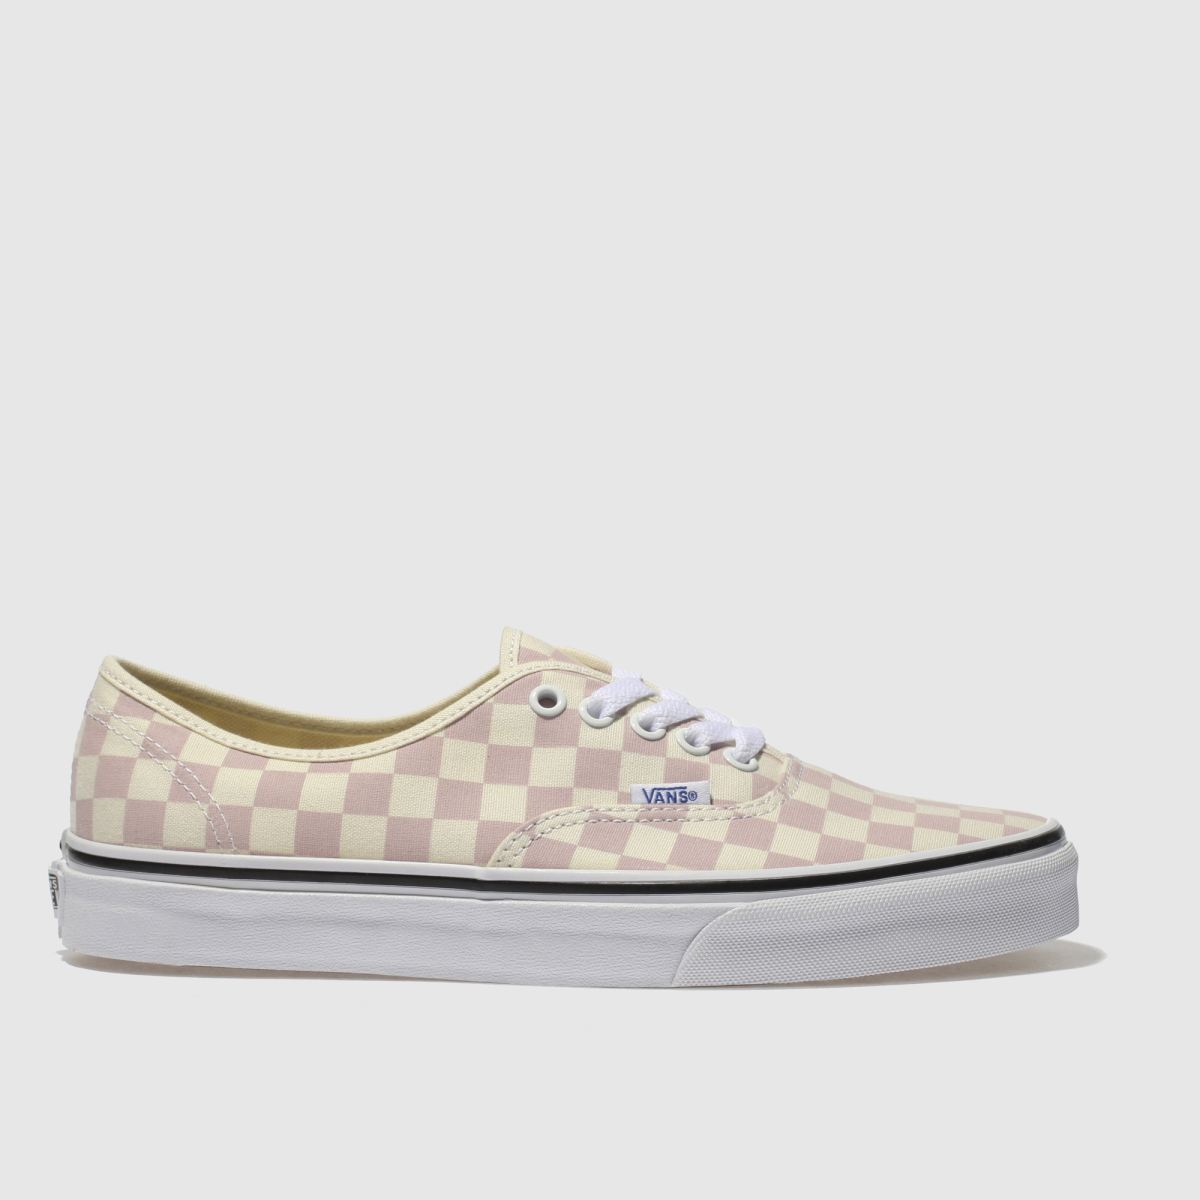 Vans Pale Pink Authentic Checkerboard Trainers